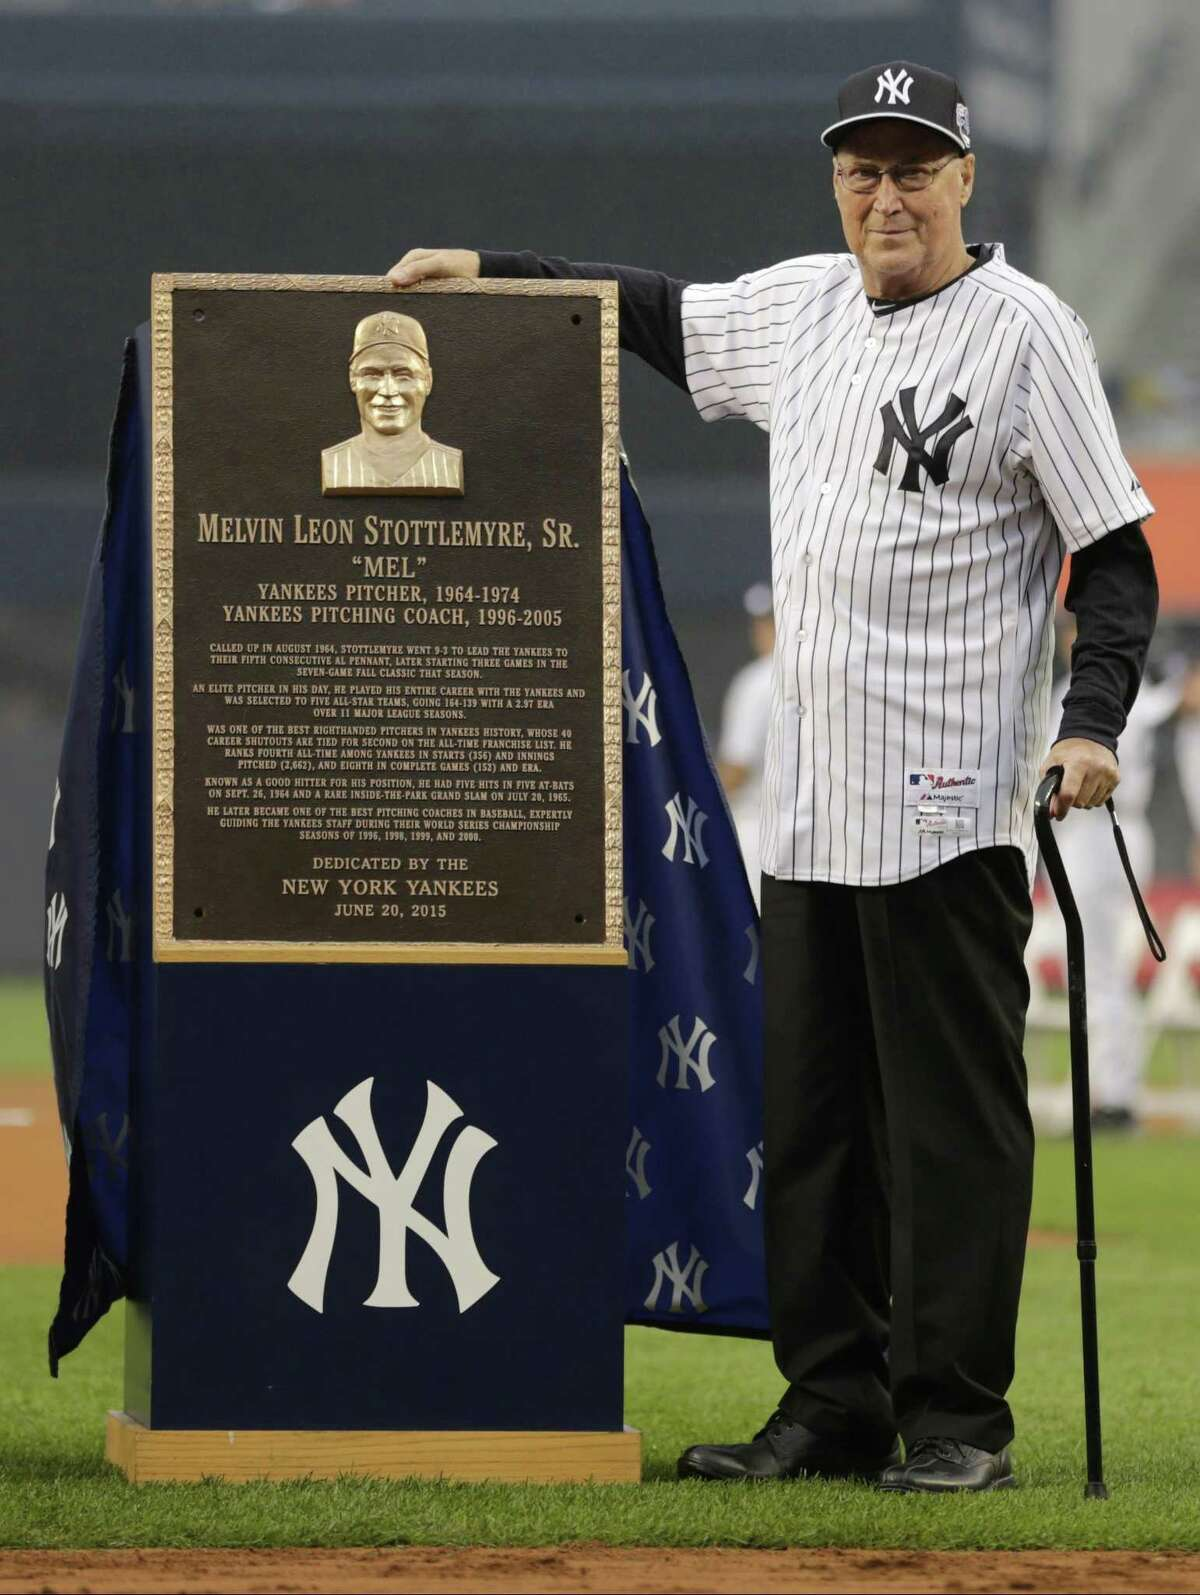 Mel Stottlemyre poses with his plaque.